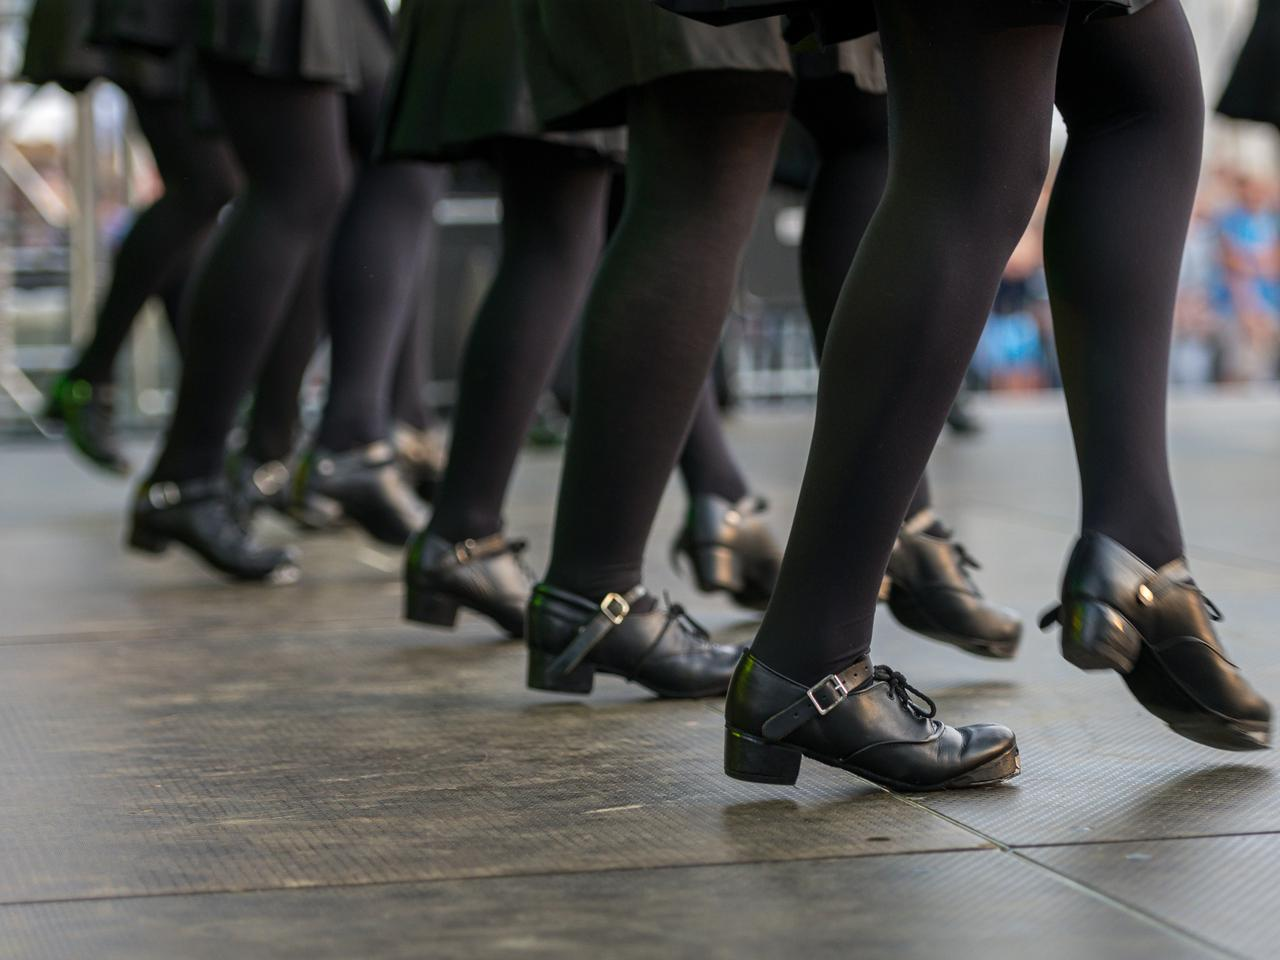 Irish folk dance in contemporary Irish black shoes